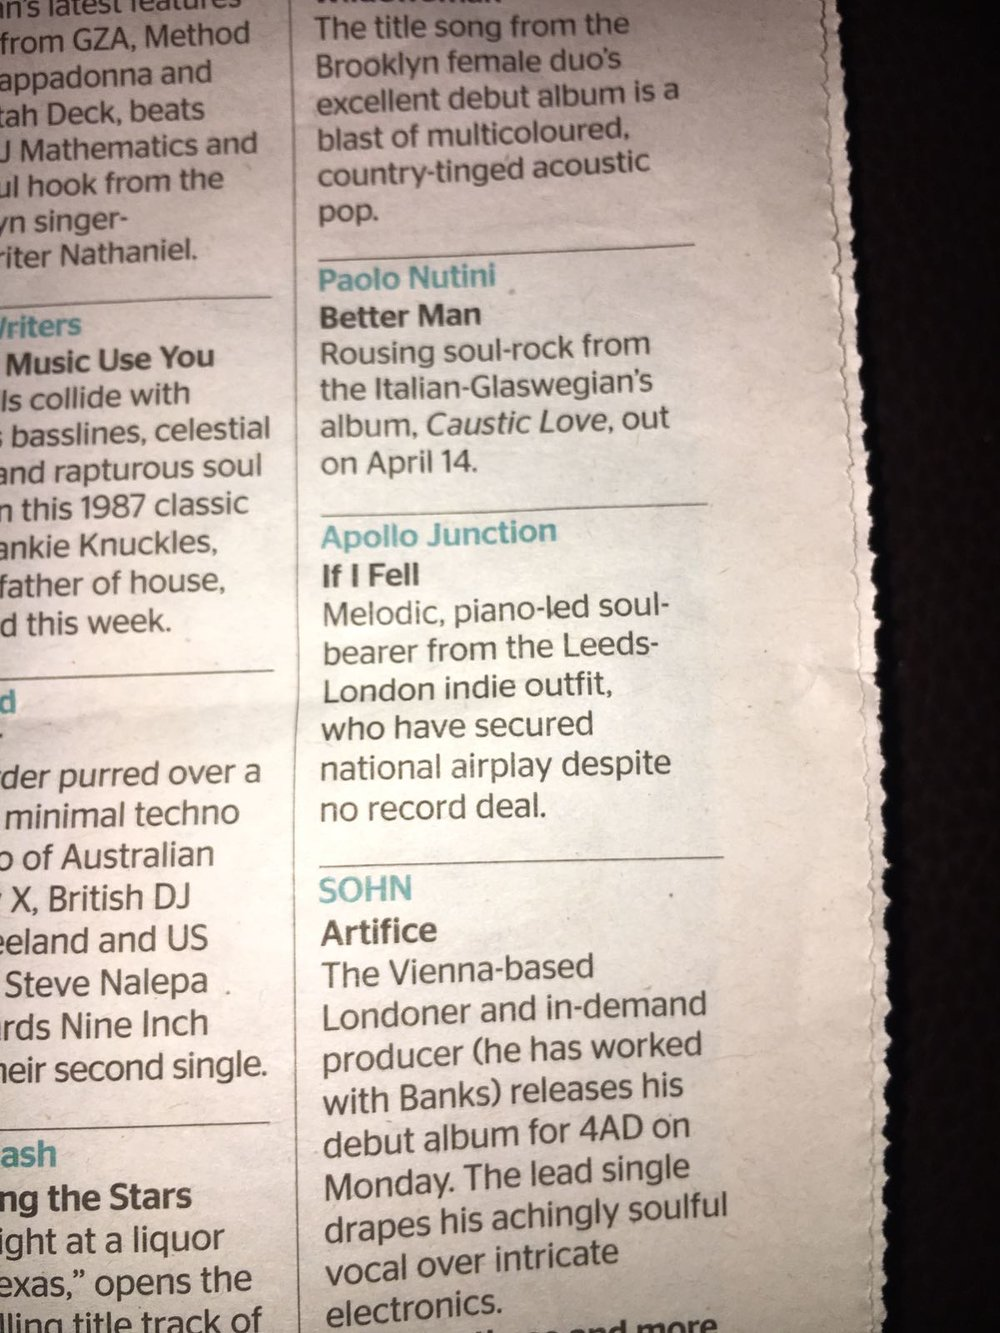 The Times: New Tracks